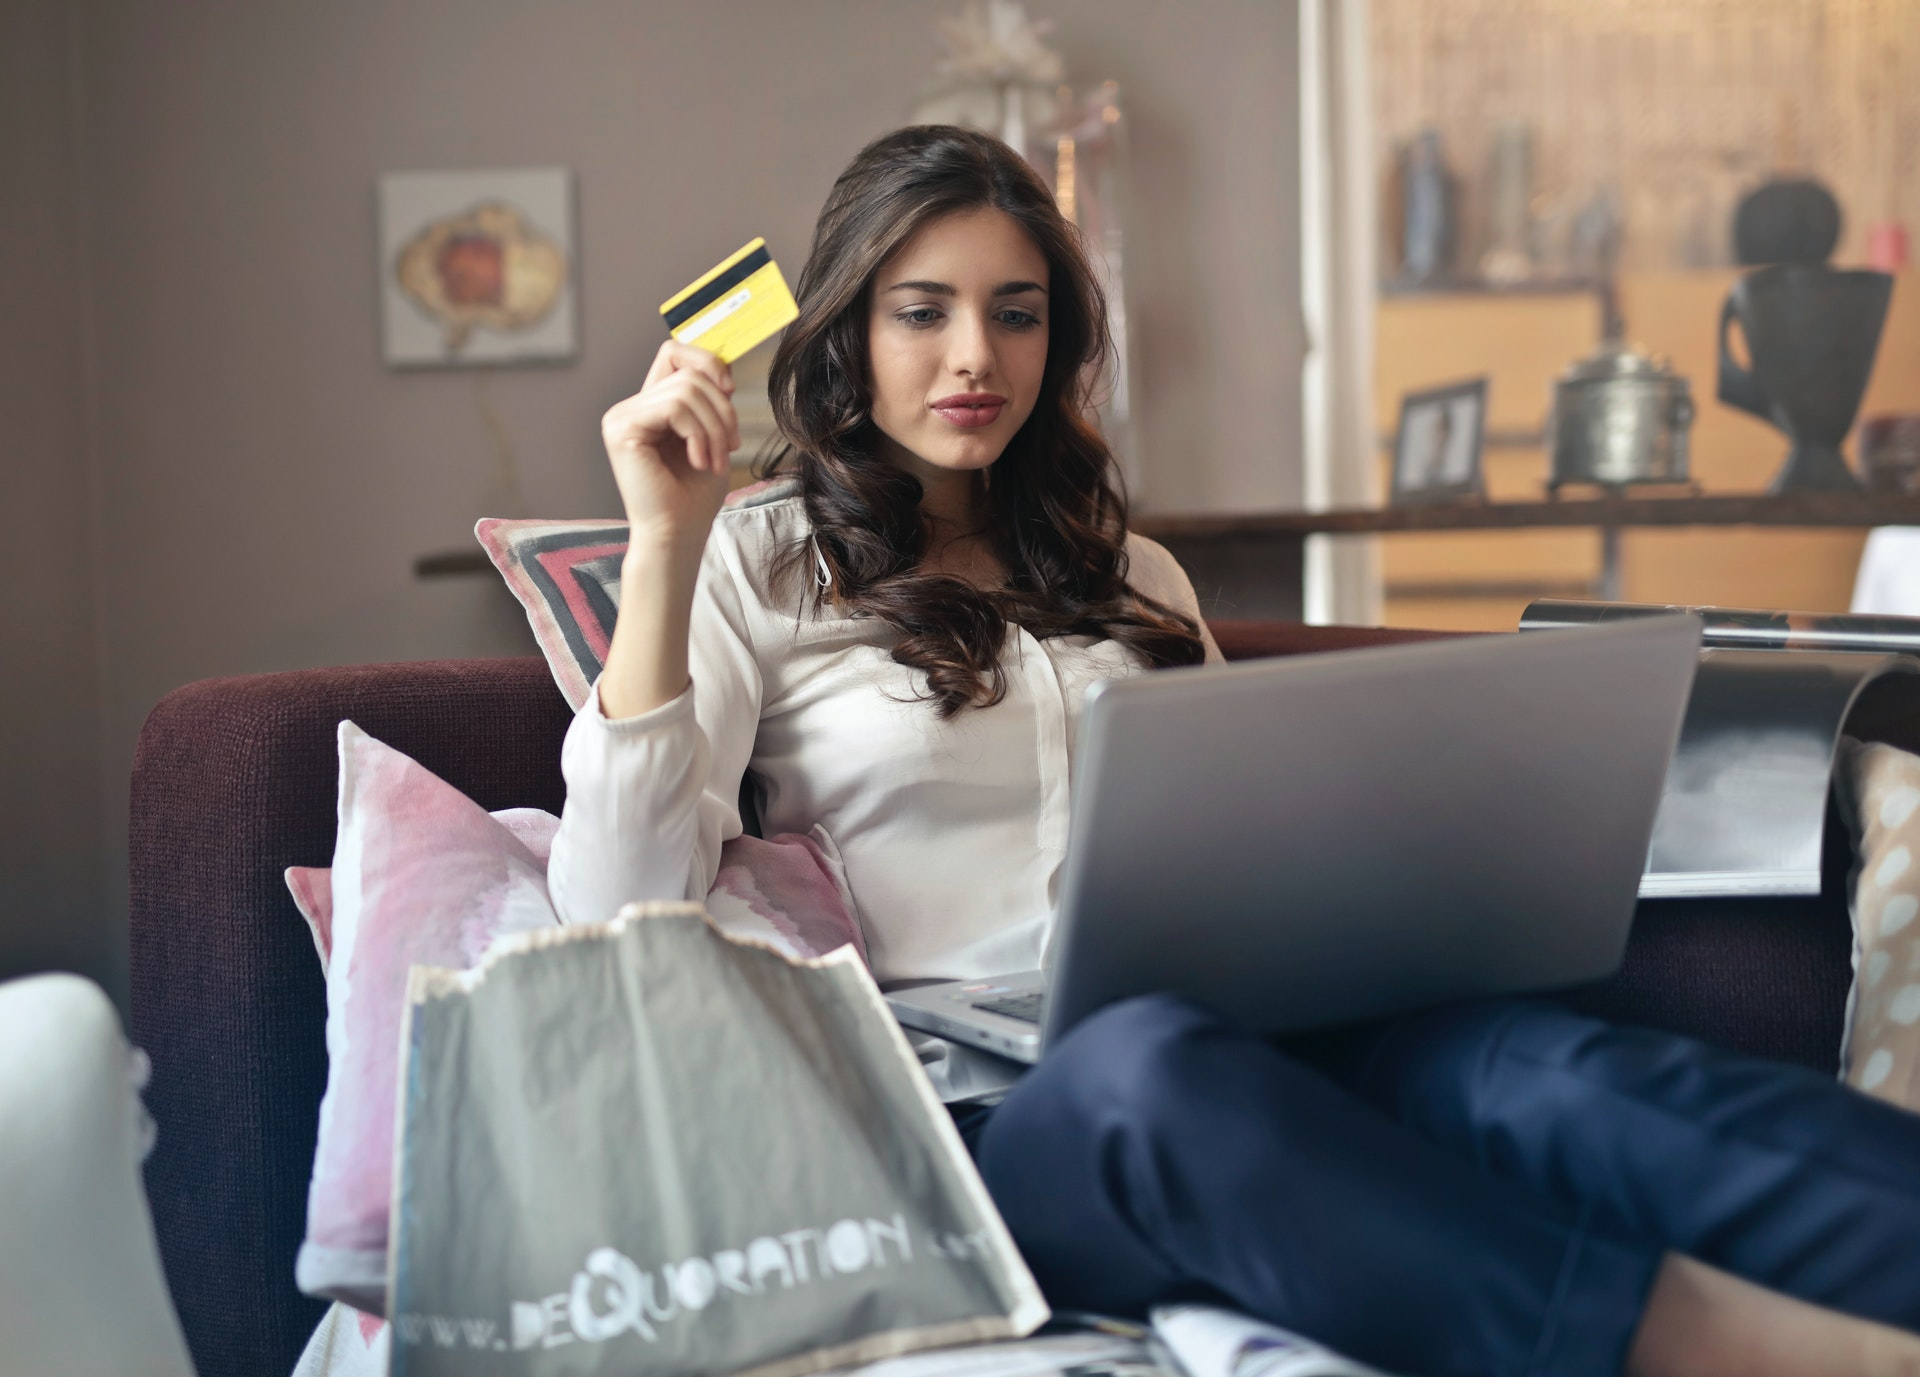 woman with laptop on sofa holding credit card